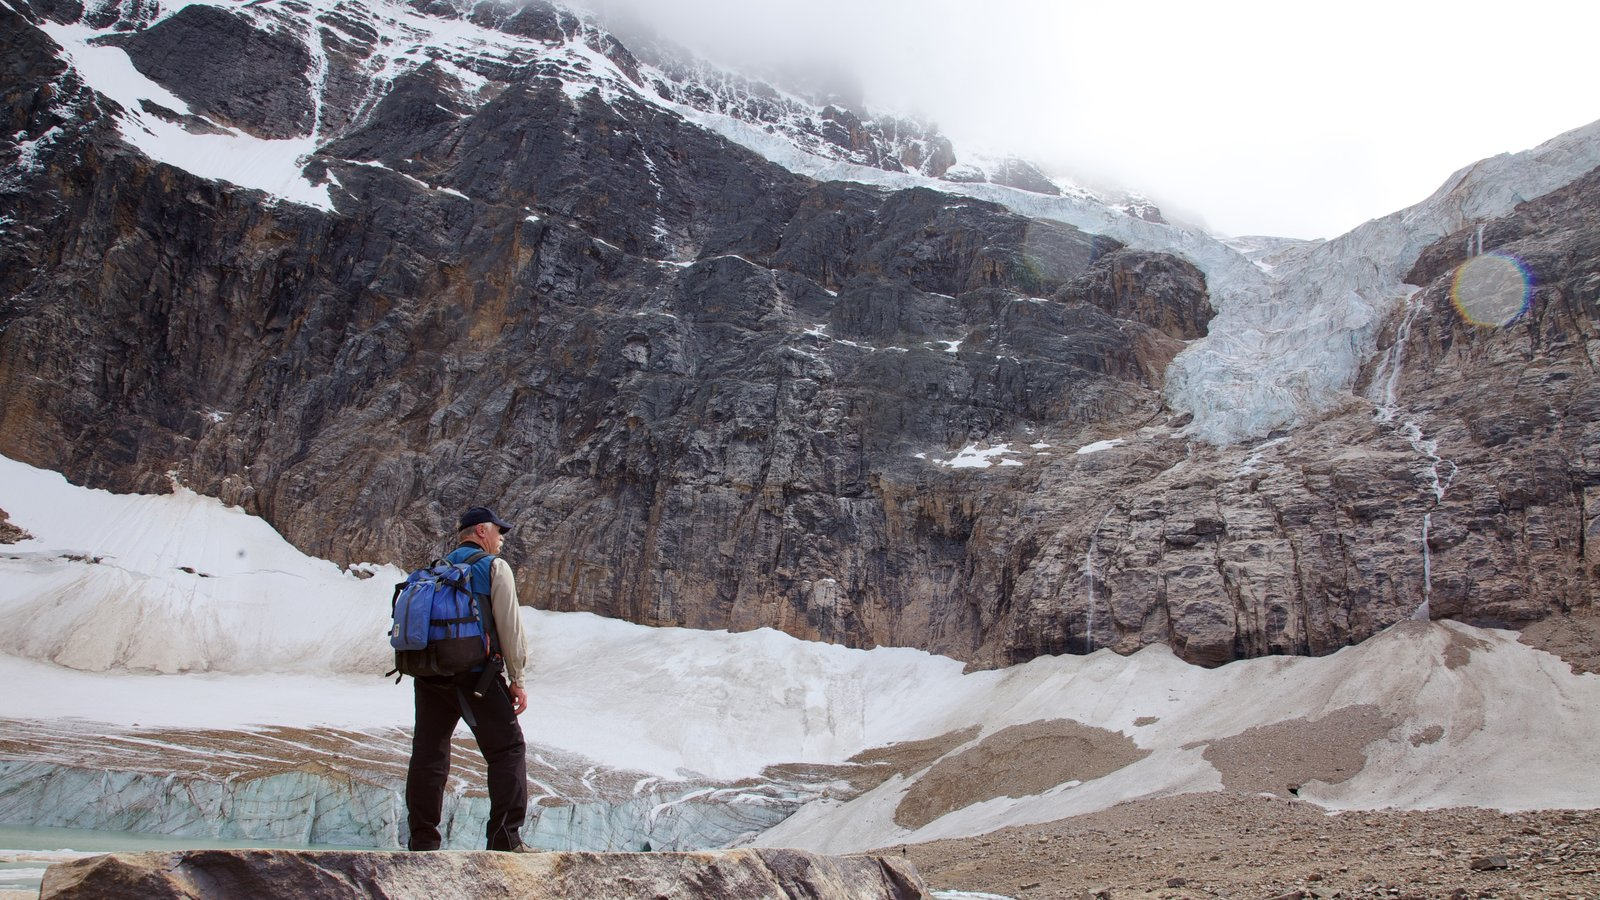 Mount Edith Cavell which includes landscape views, hiking or walking and mountains